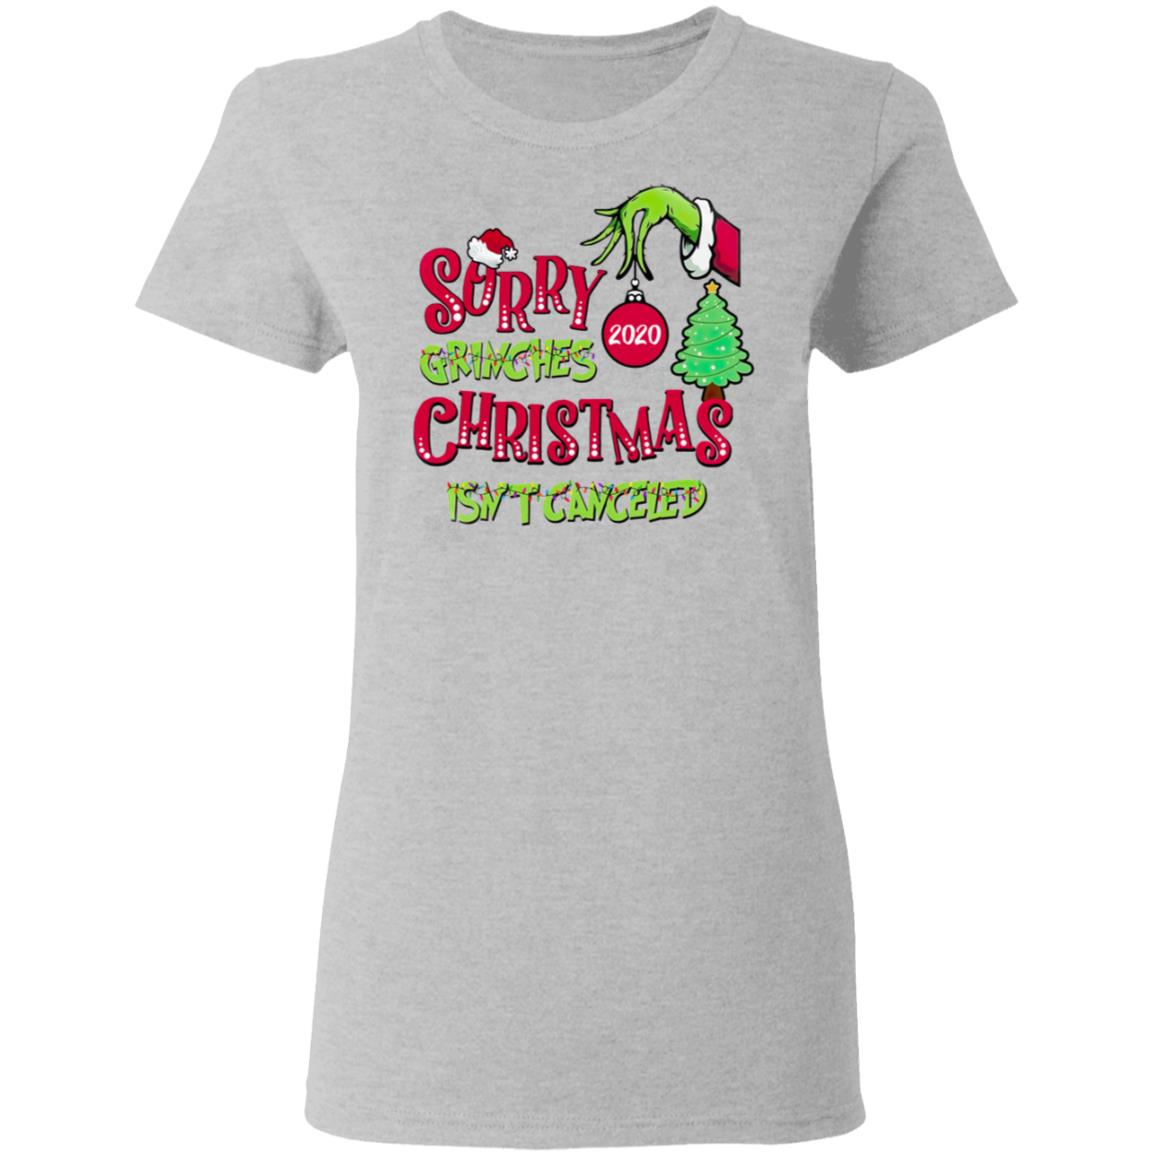 Sorry Grinches 2020 Christmas Isn't Canceled